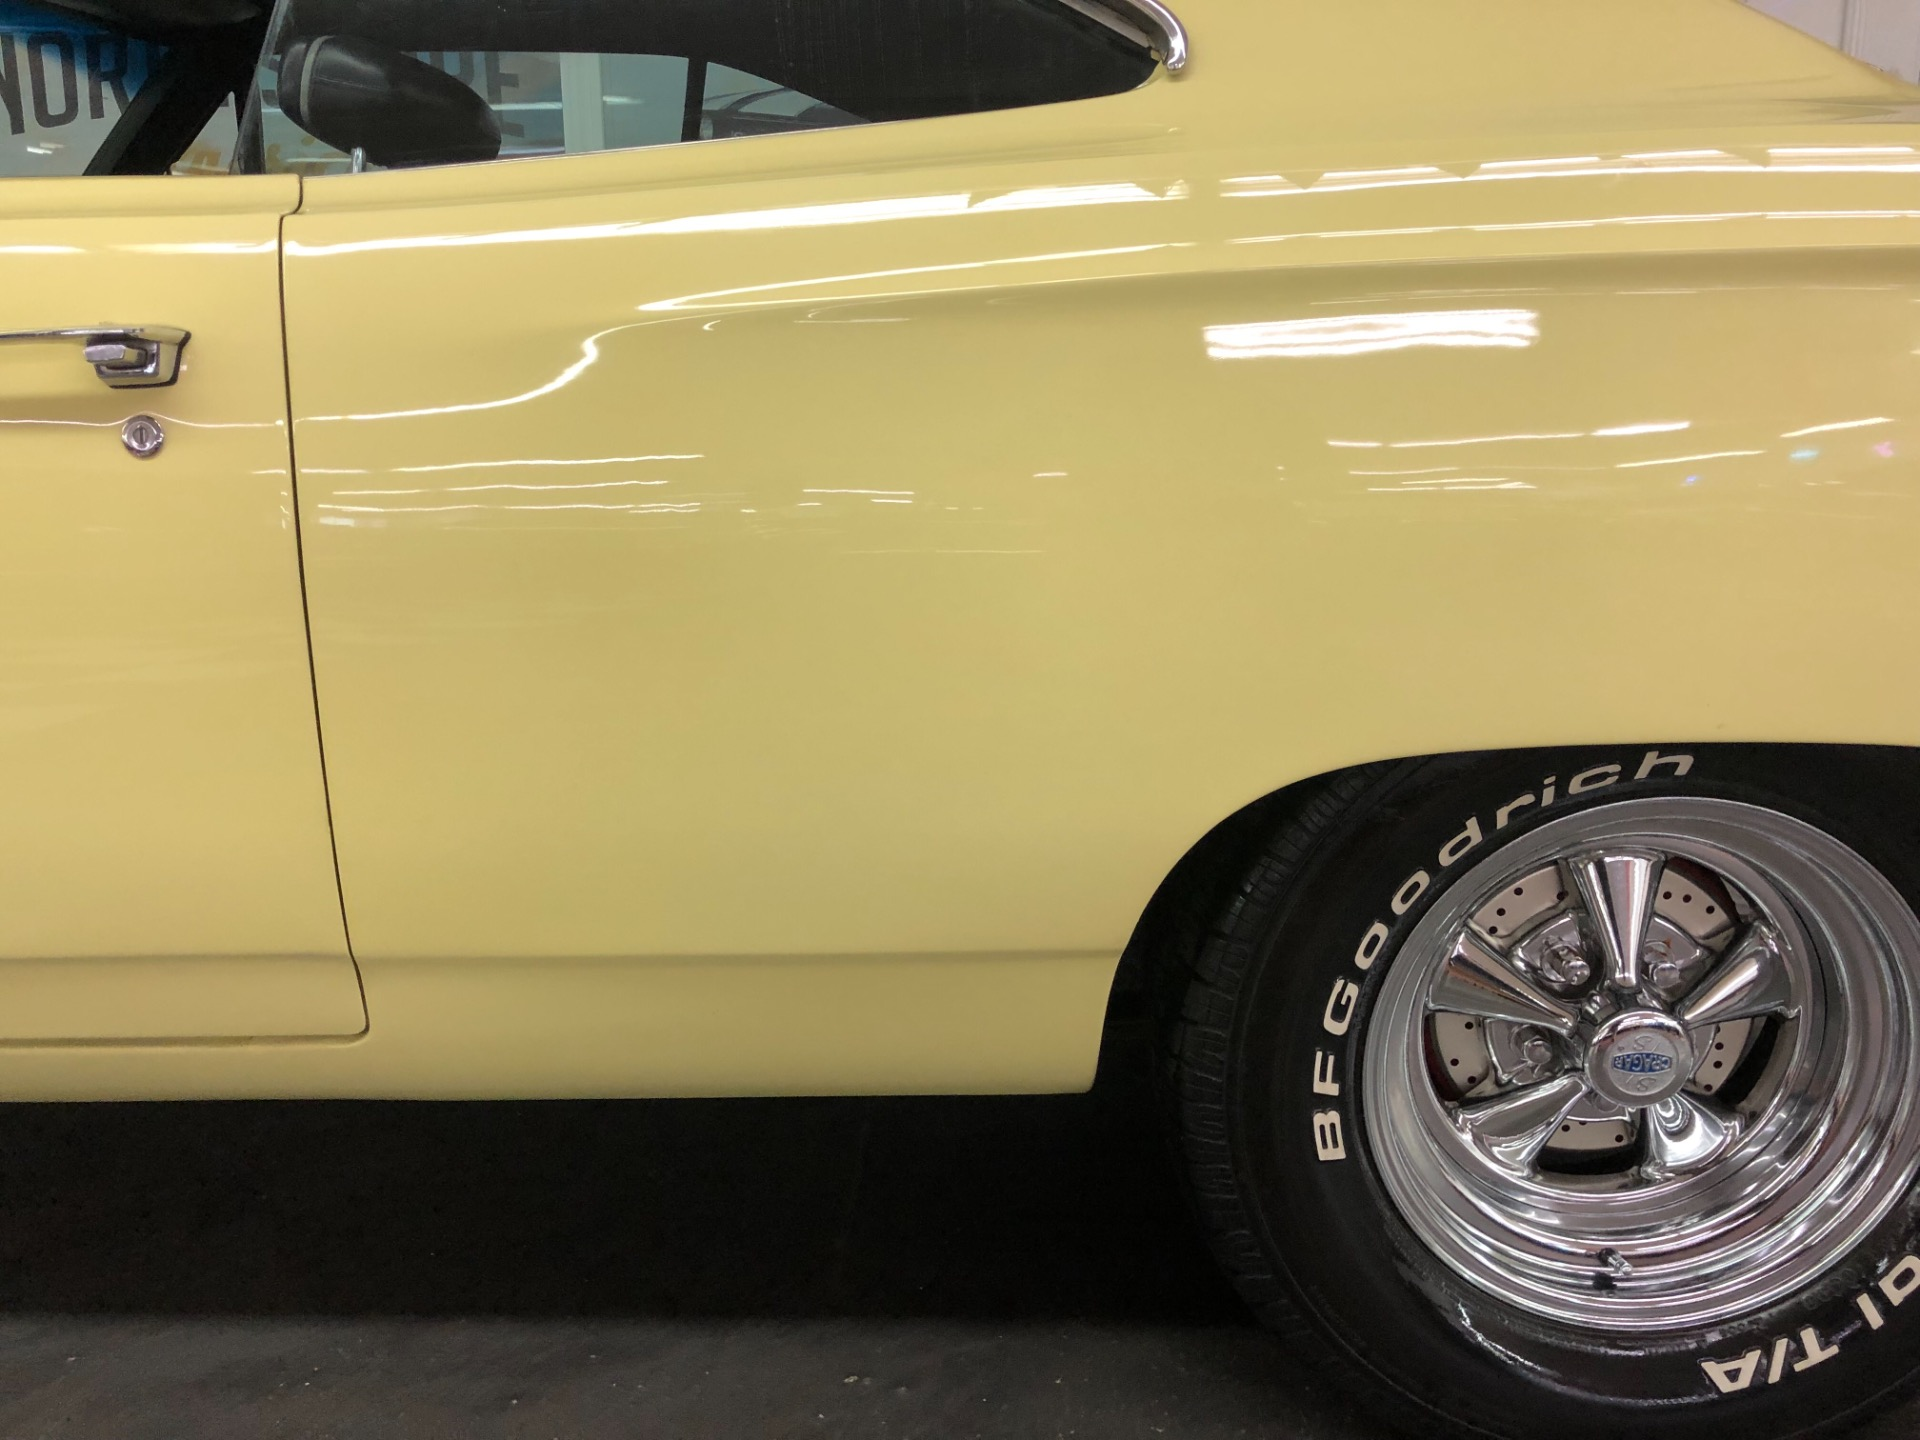 Used 1969 Plymouth Roadrunner -REAL RM23 CODE-NICE RESTORATION-FACTORY Y2 CODE-SEE VIDEO | Mundelein, IL